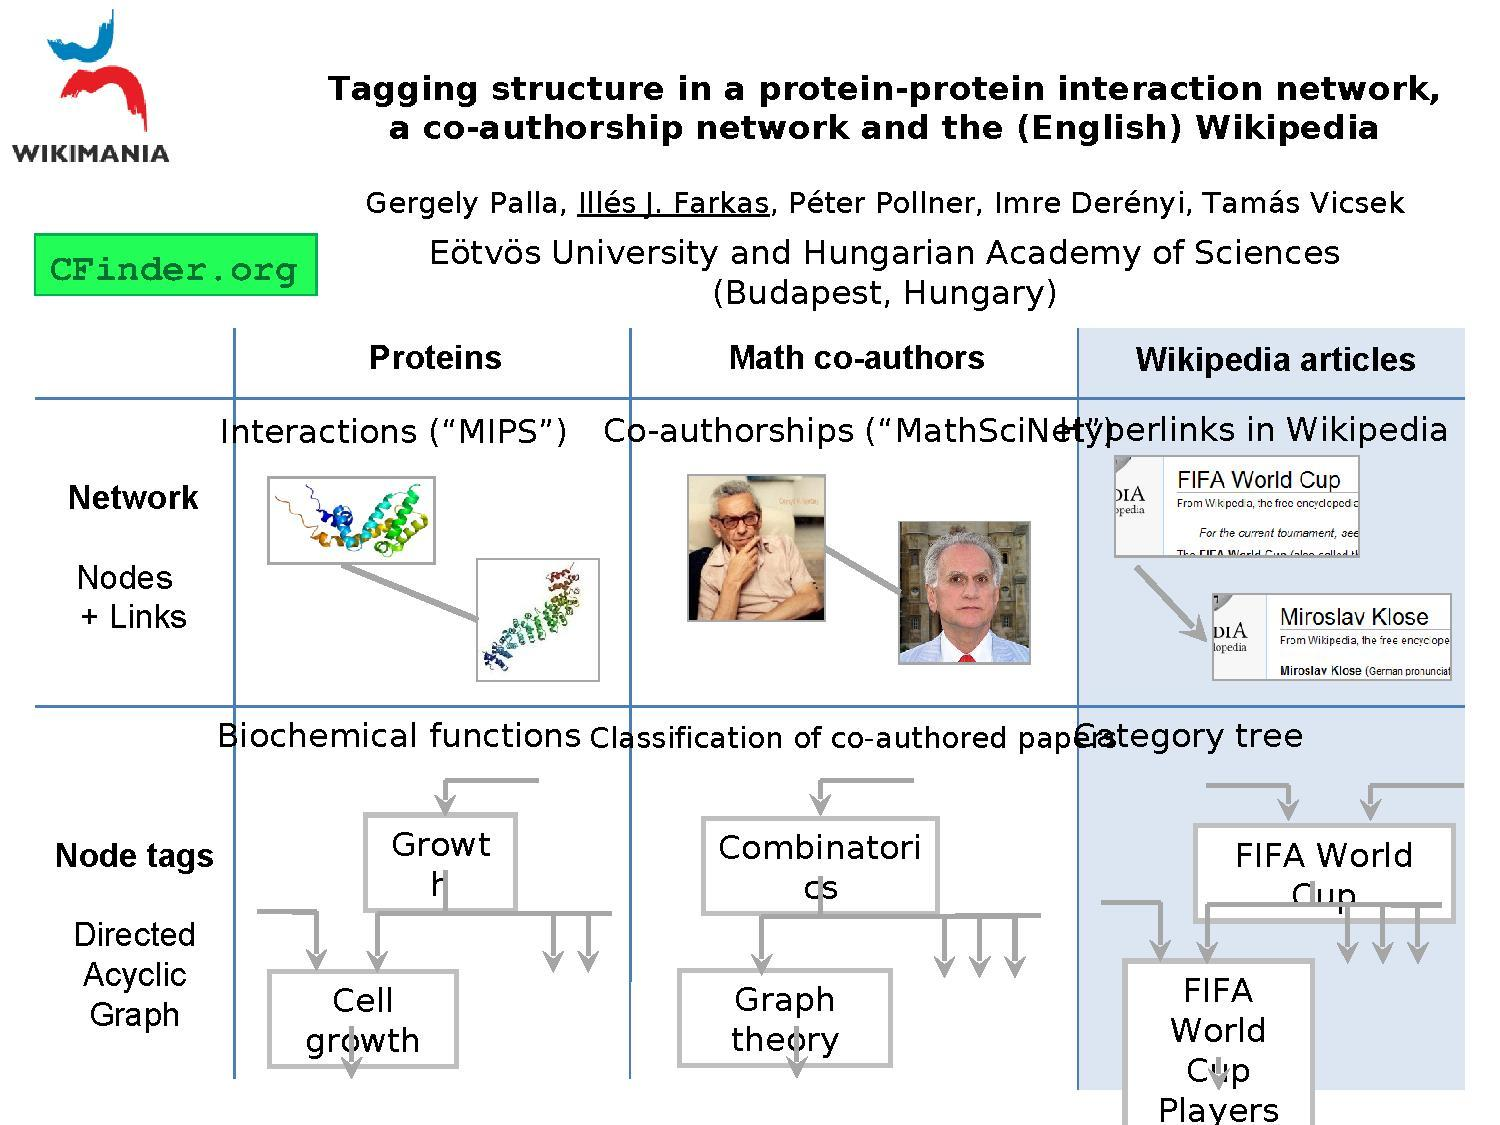 Comparing the structure of tagging in a protein-protein interaction network, a co-authorship network and the English Wikipedia.pdf